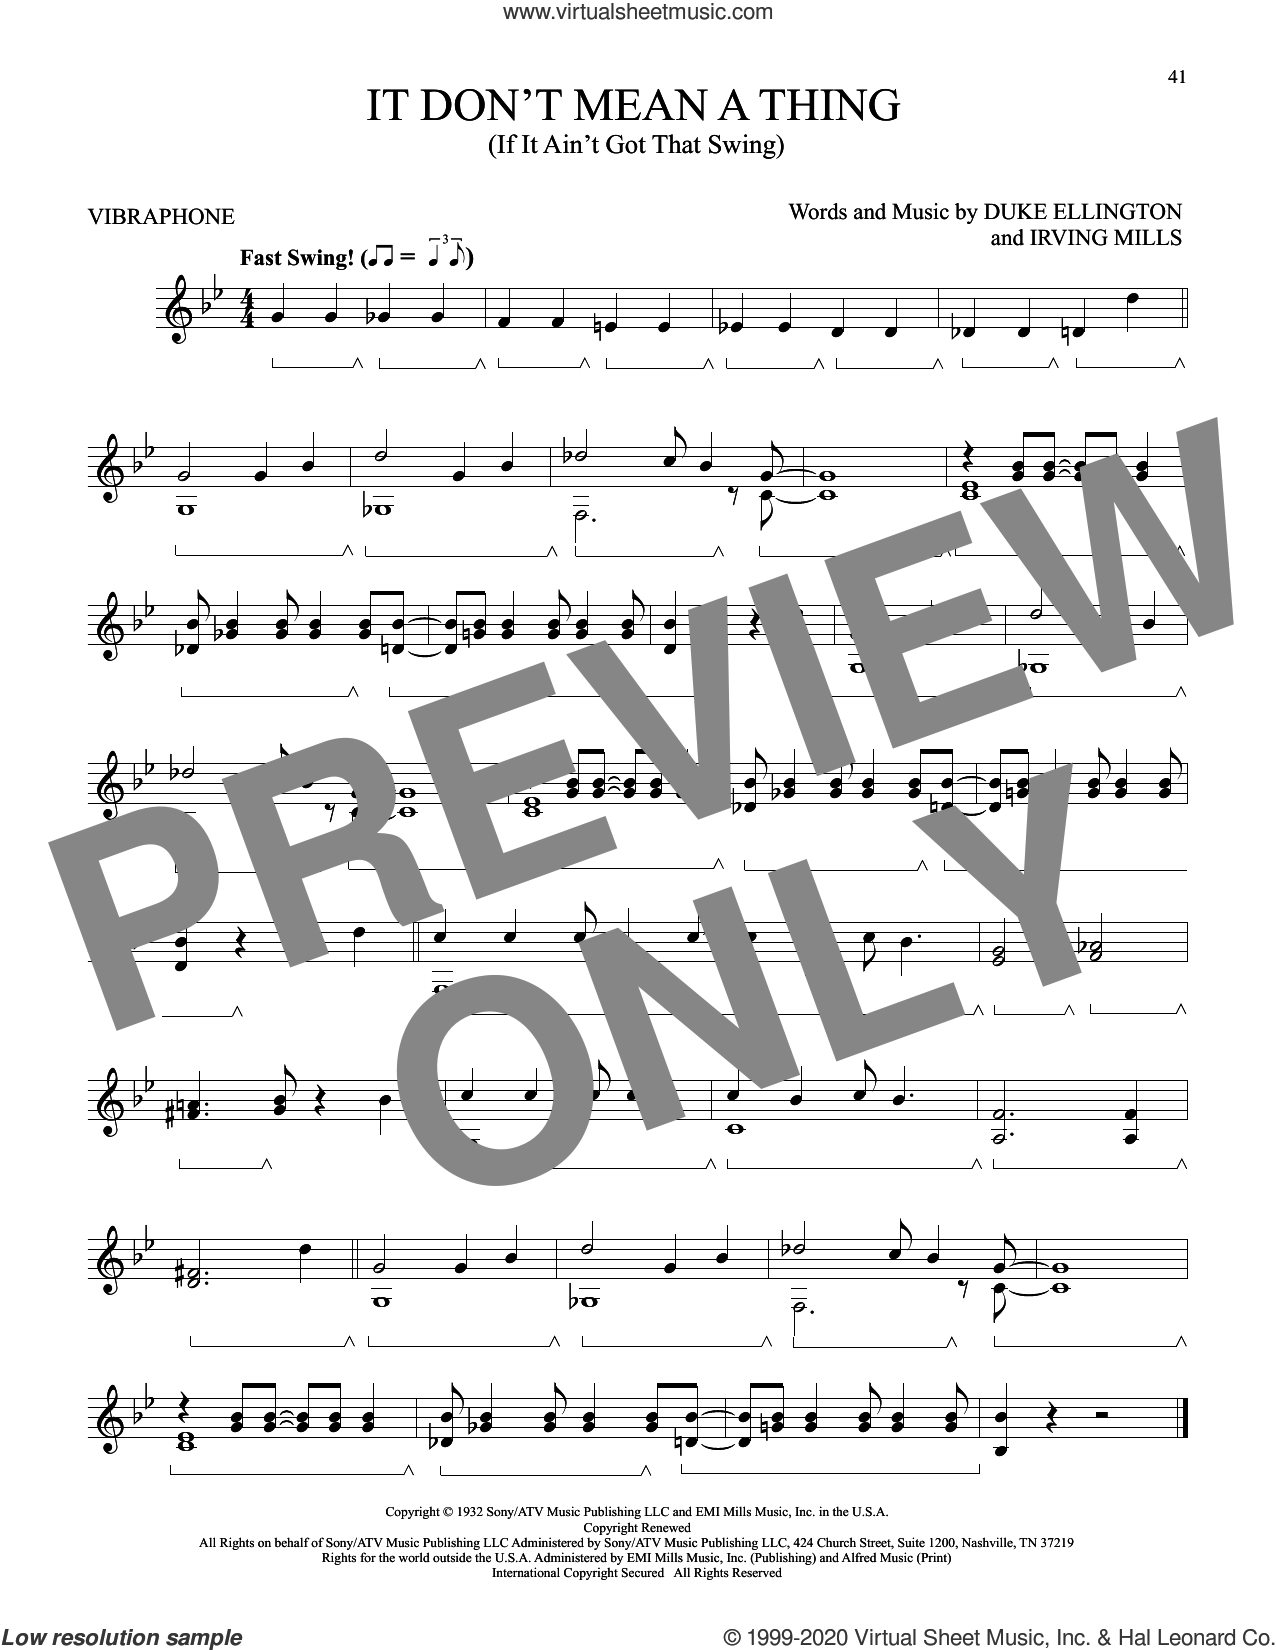 It Don't Mean A Thing (If It Ain't Got That Swing) sheet music for Vibraphone Solo by Duke Ellington and Irving Mills, intermediate skill level